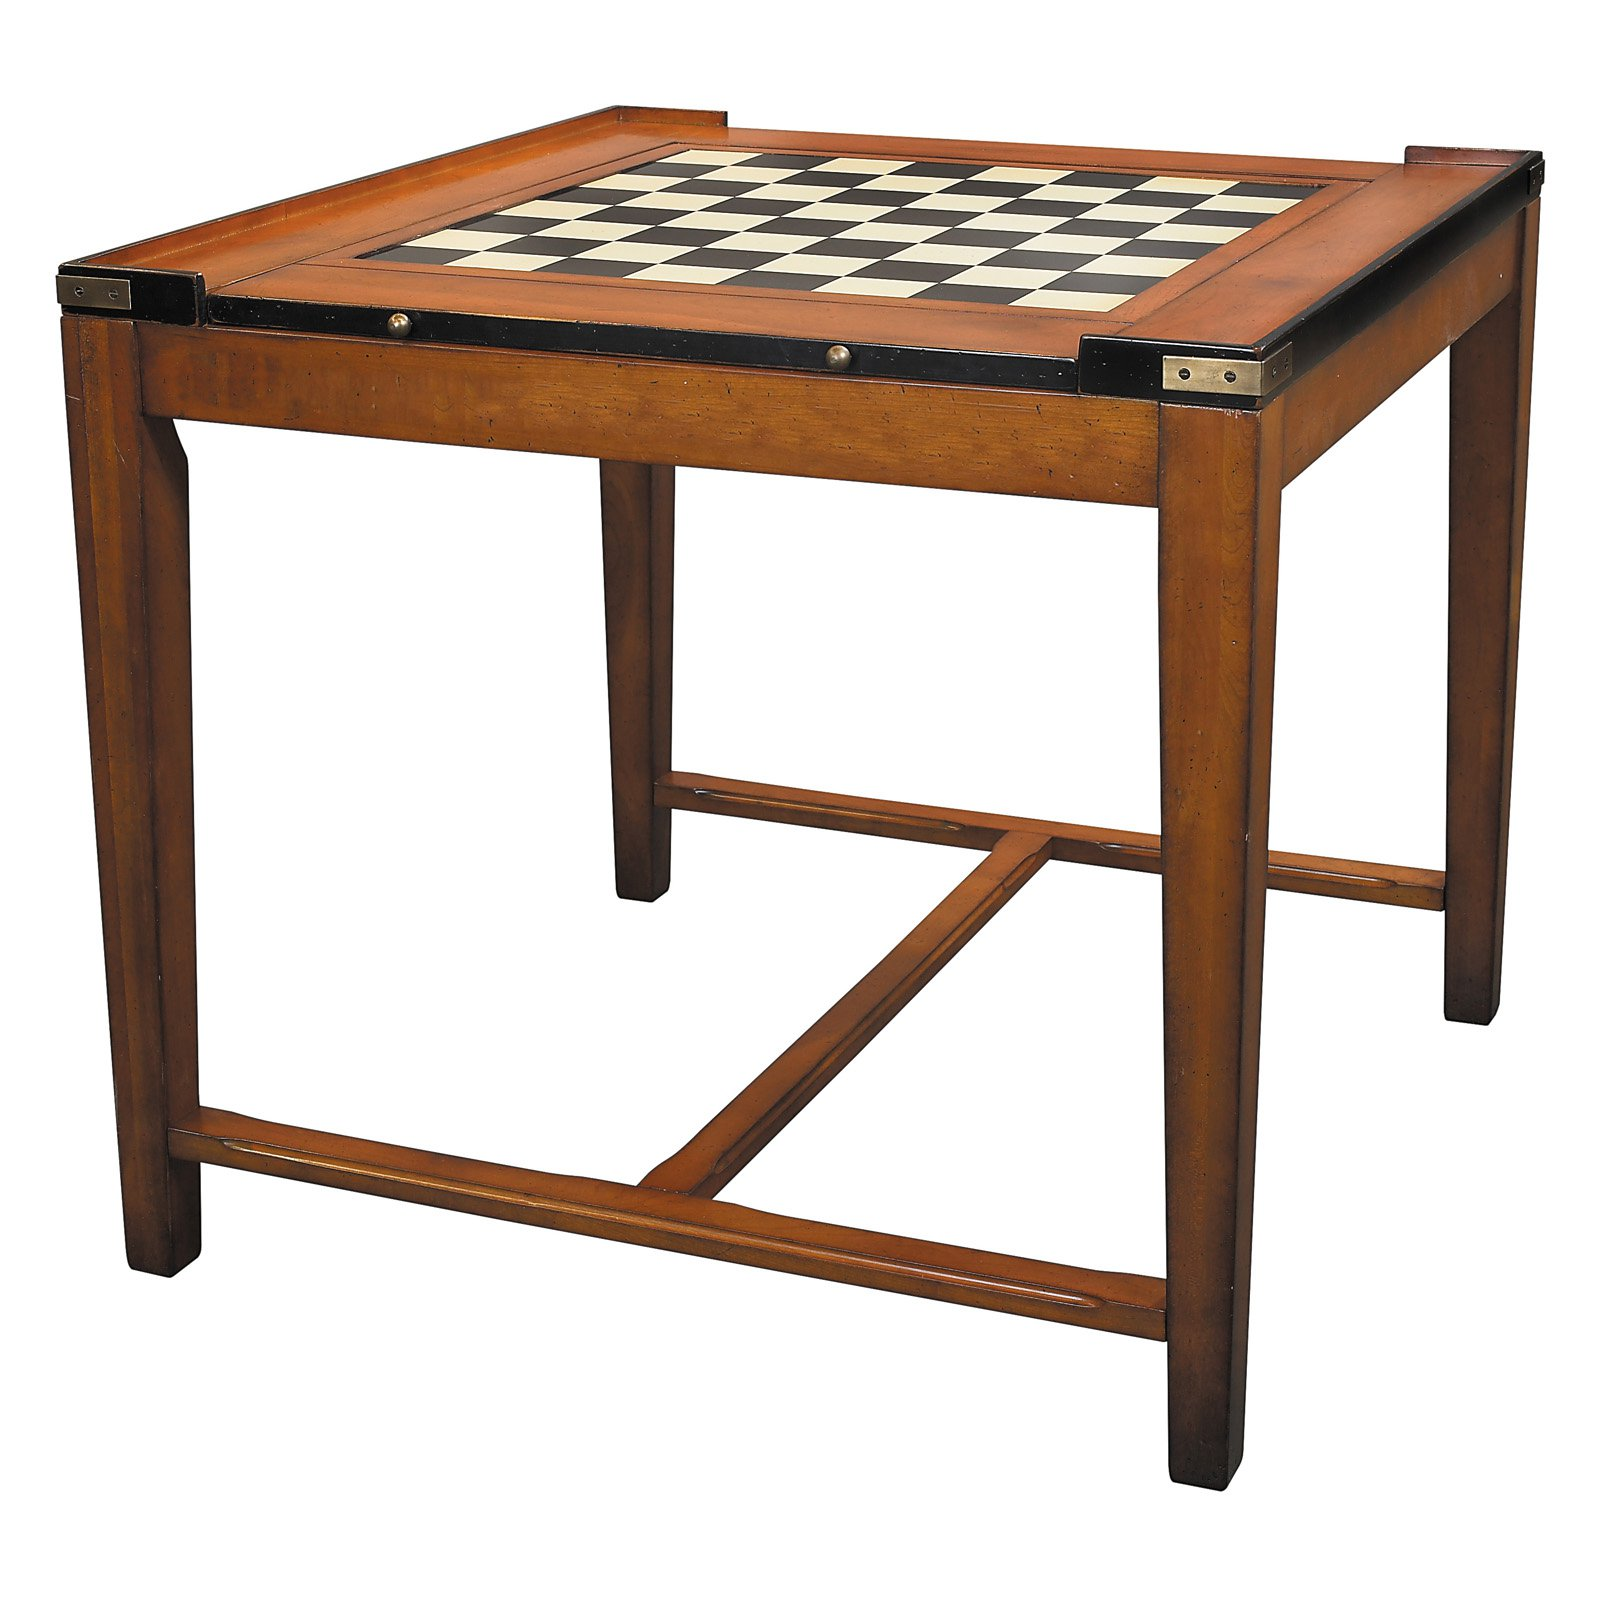 Authentic Models Casino Royale Game Table